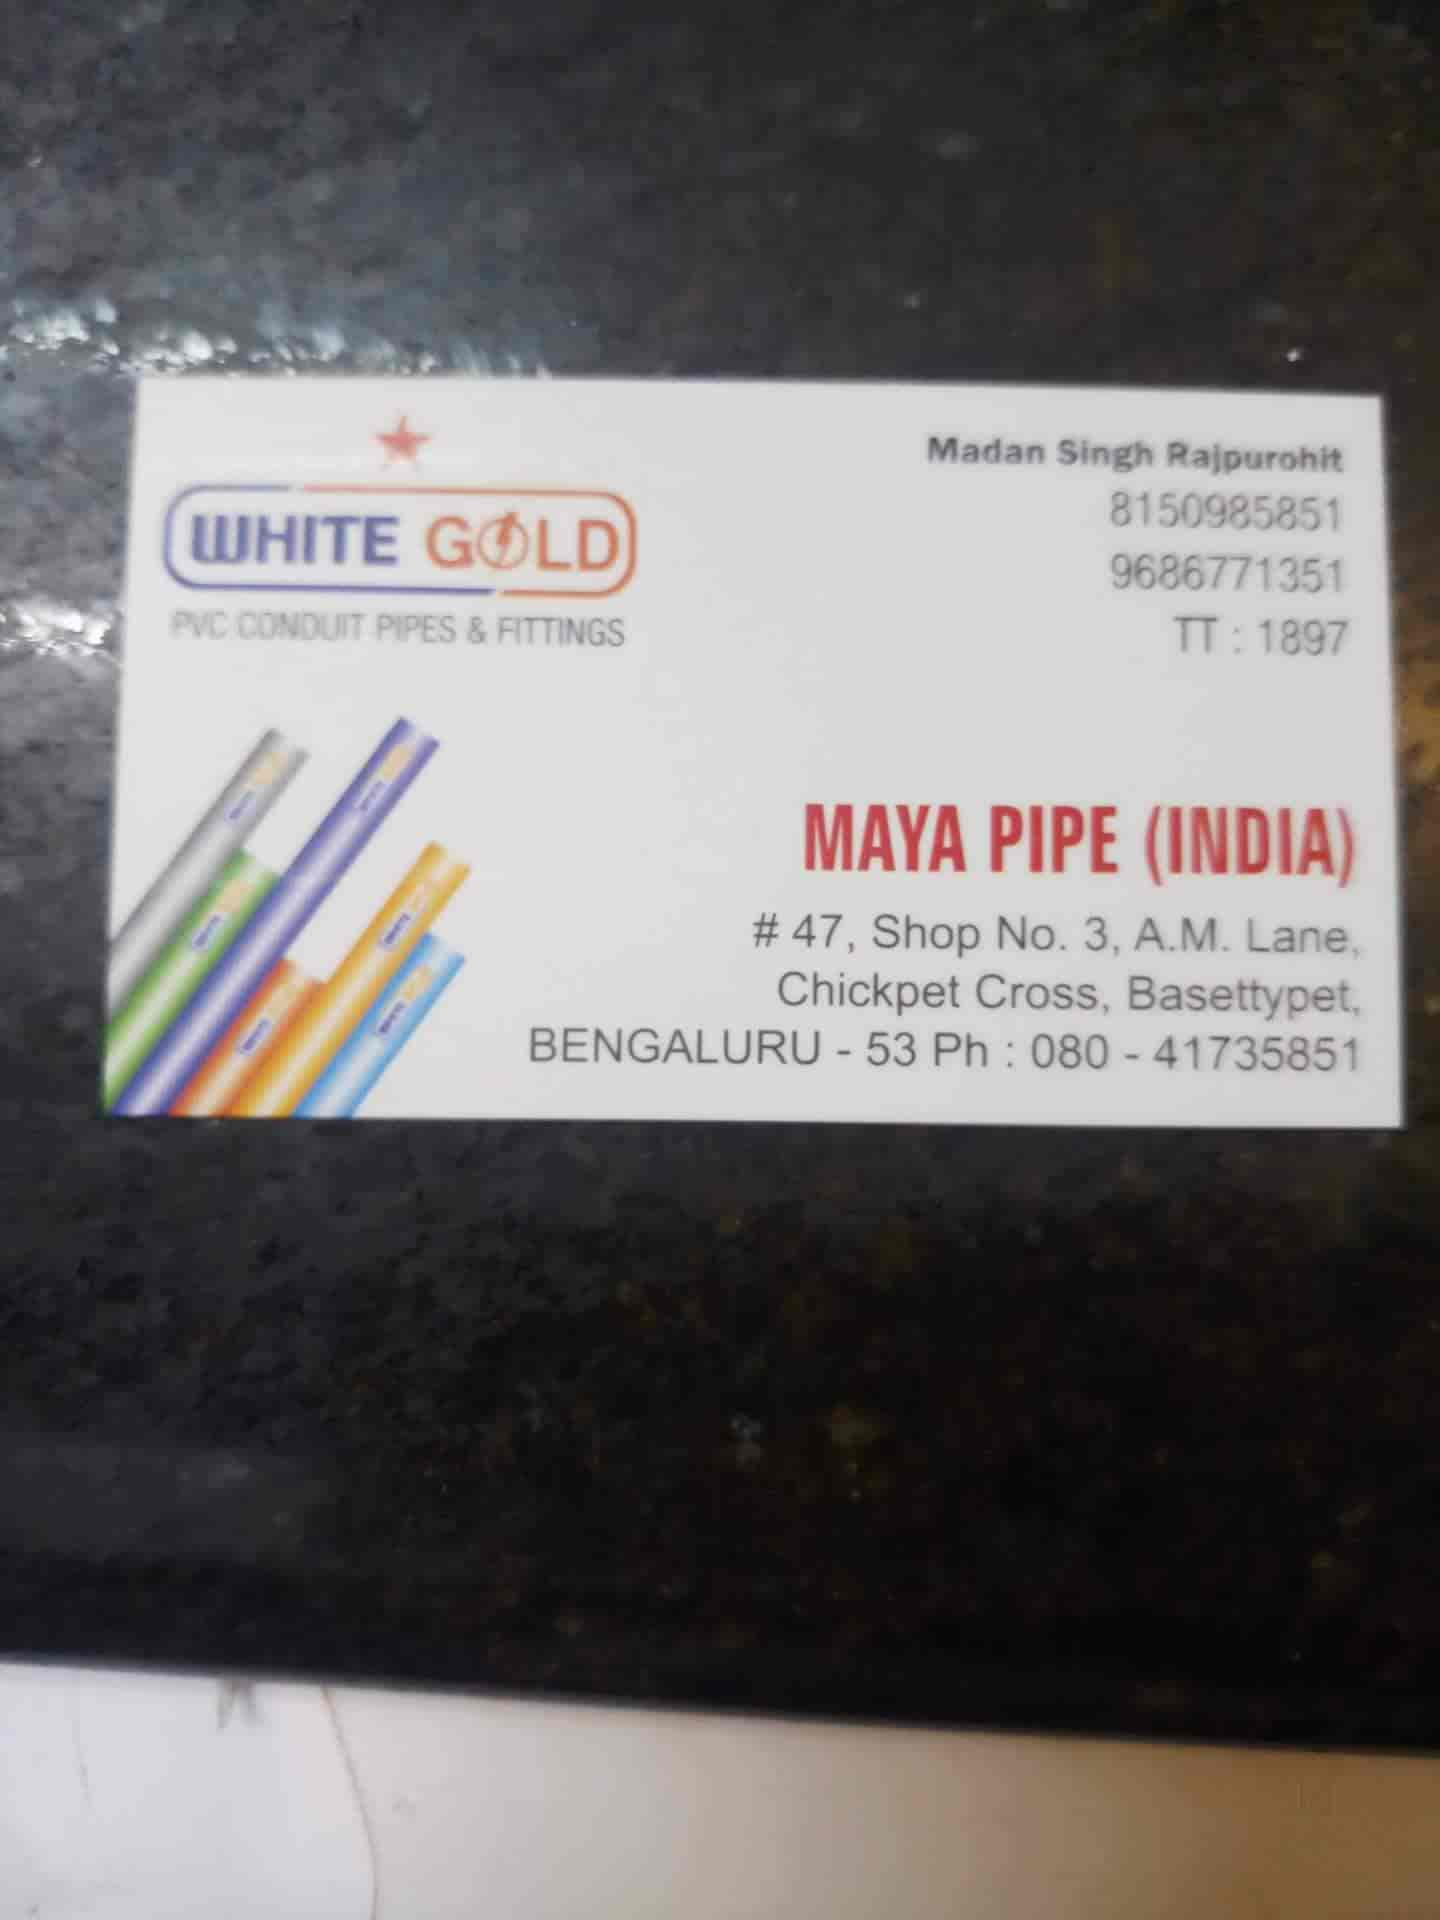 Maya Pipe (INDIA), BVK Iyengar Road - Pipe Dealers in